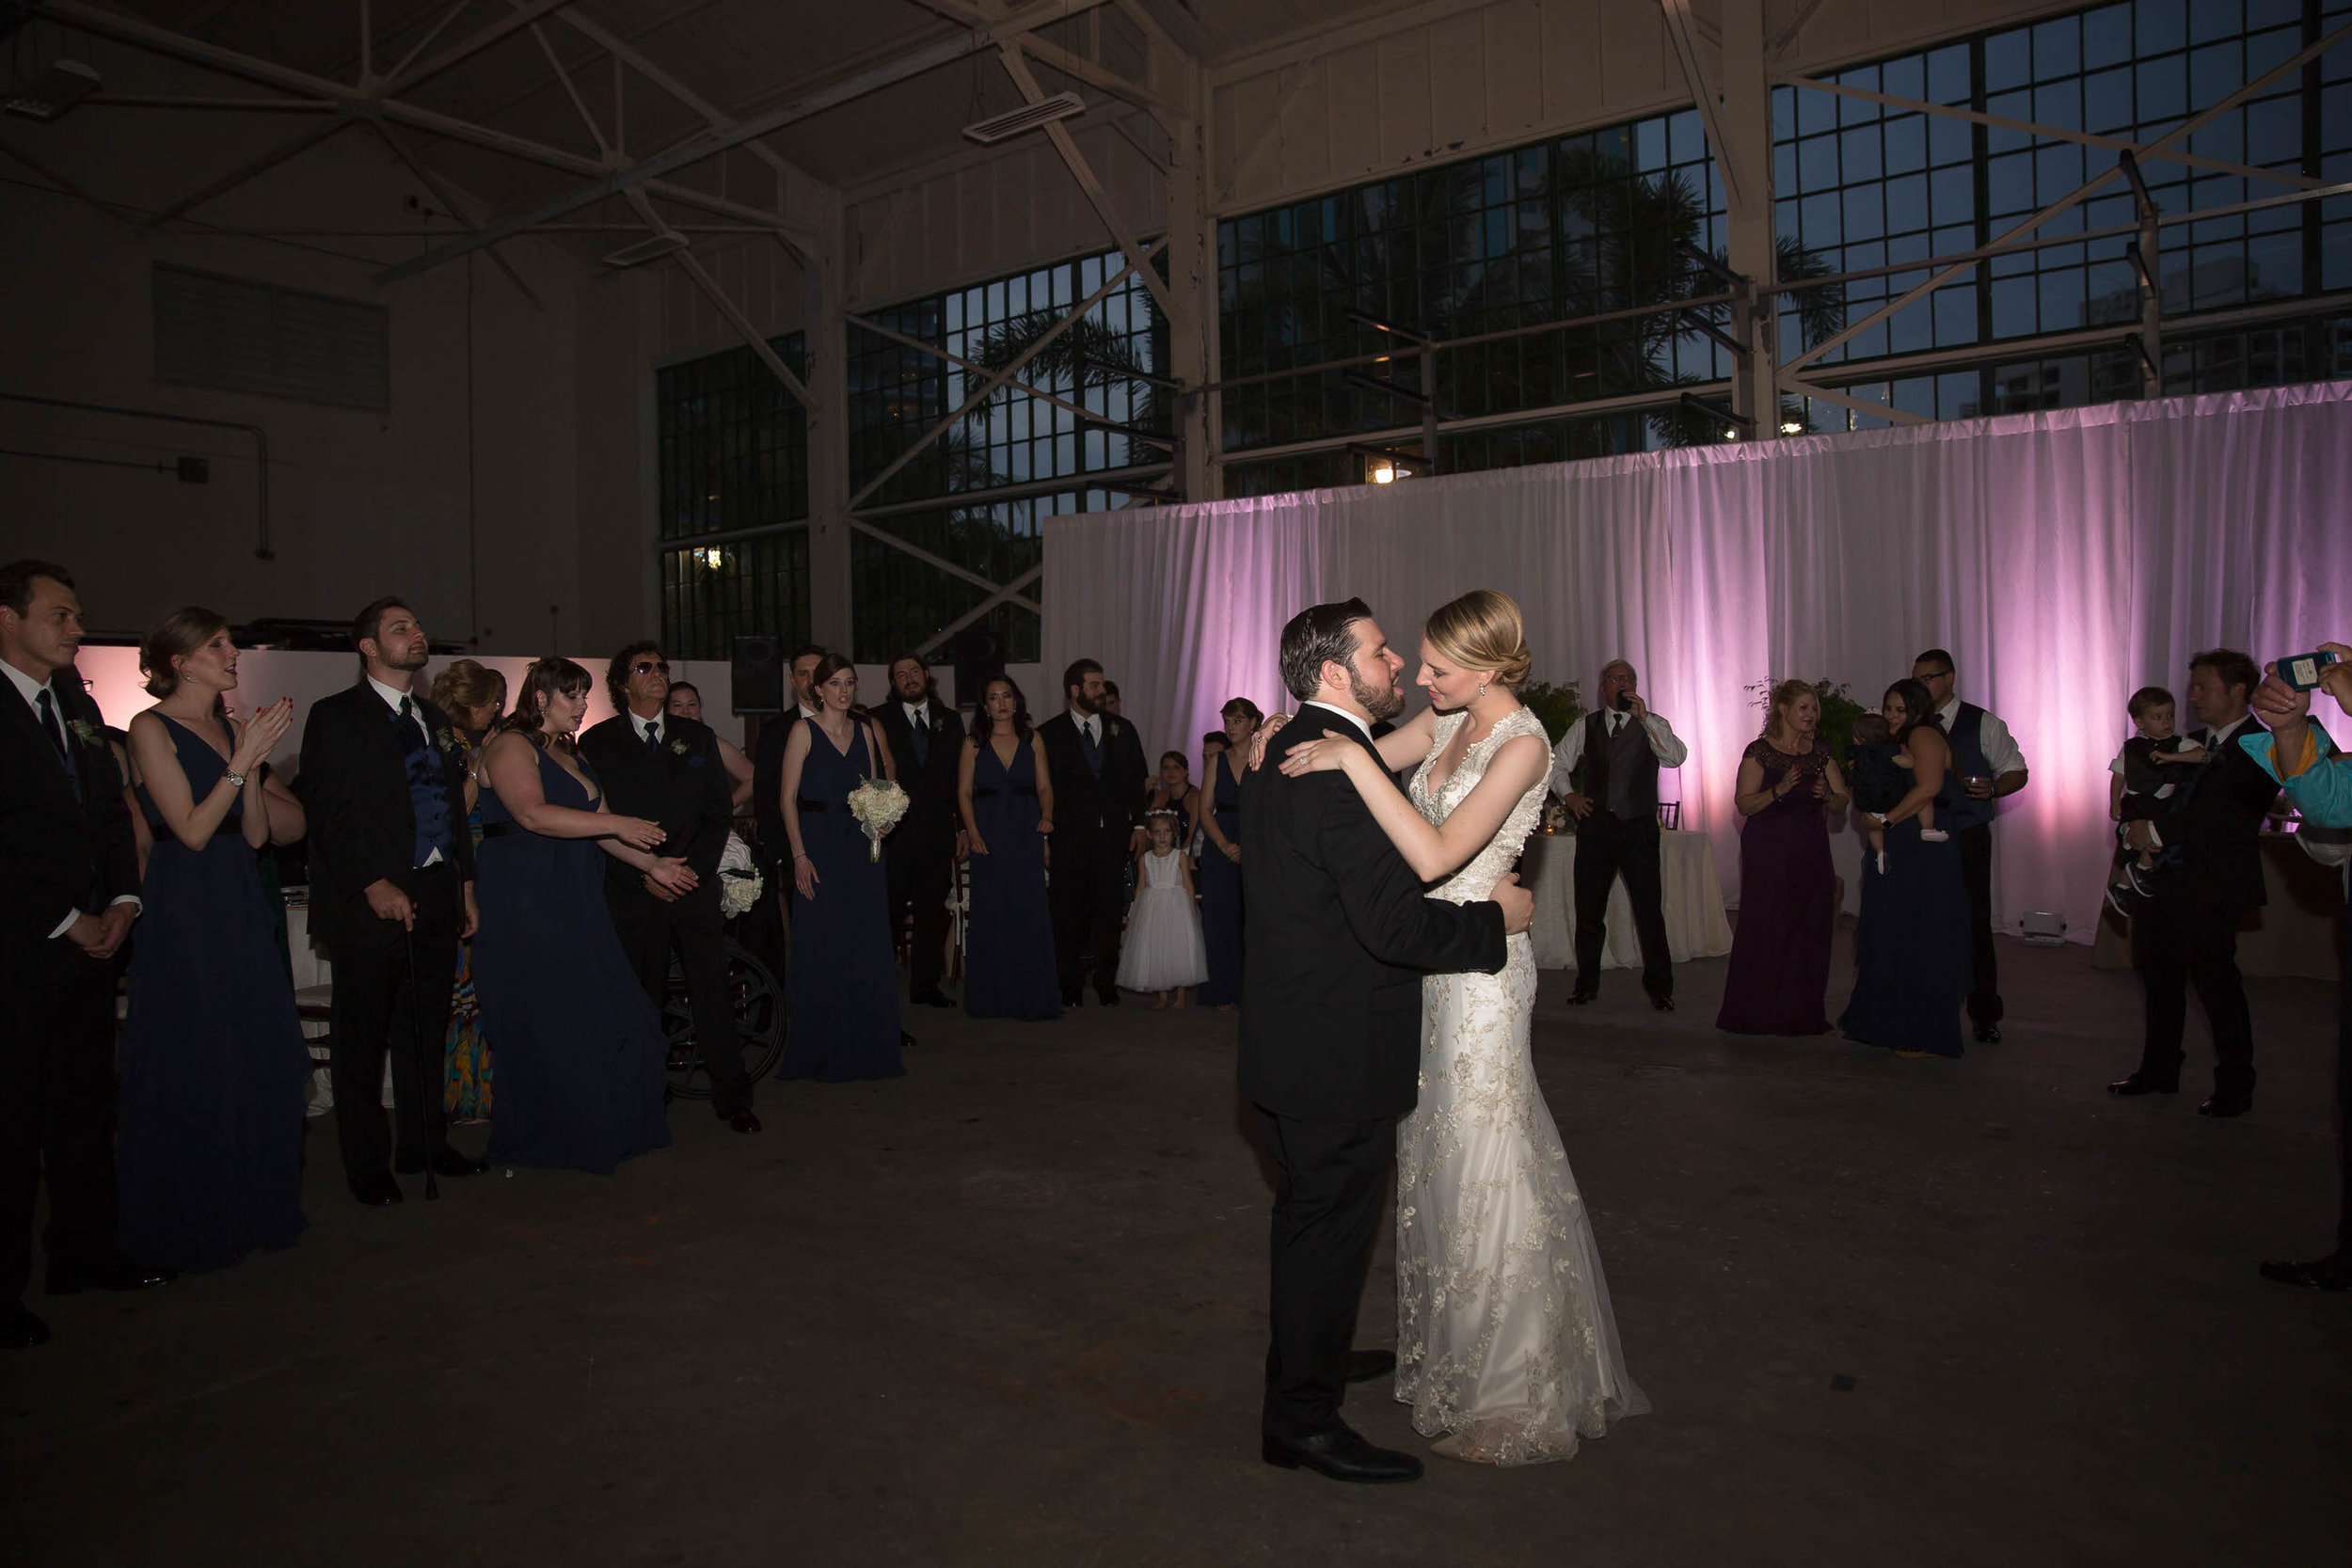 shake_a_leg_first_dance_wedding_tiny_house_photo.jpg